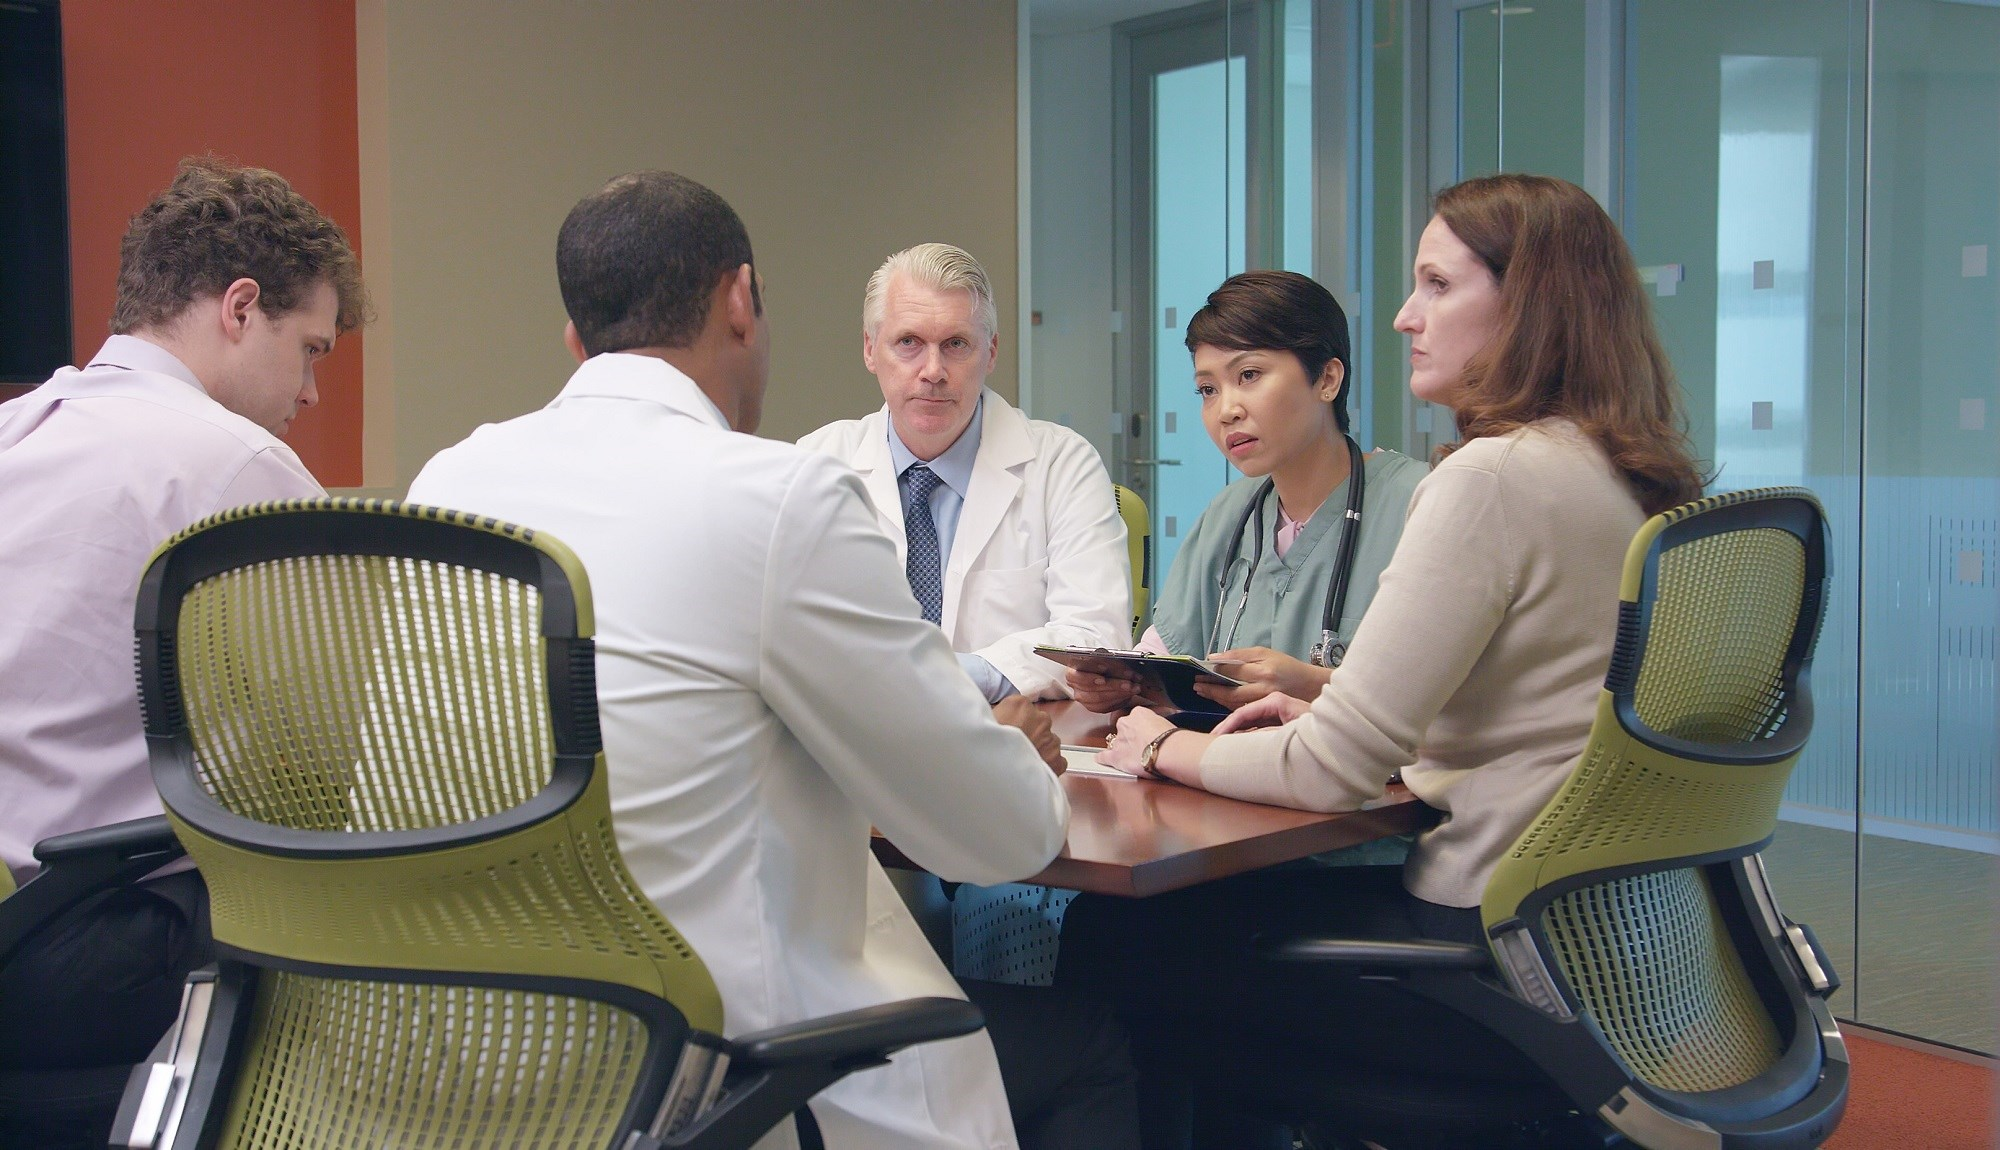 Physician practices suffer from some of the highest rates of money mishandling among service industries.